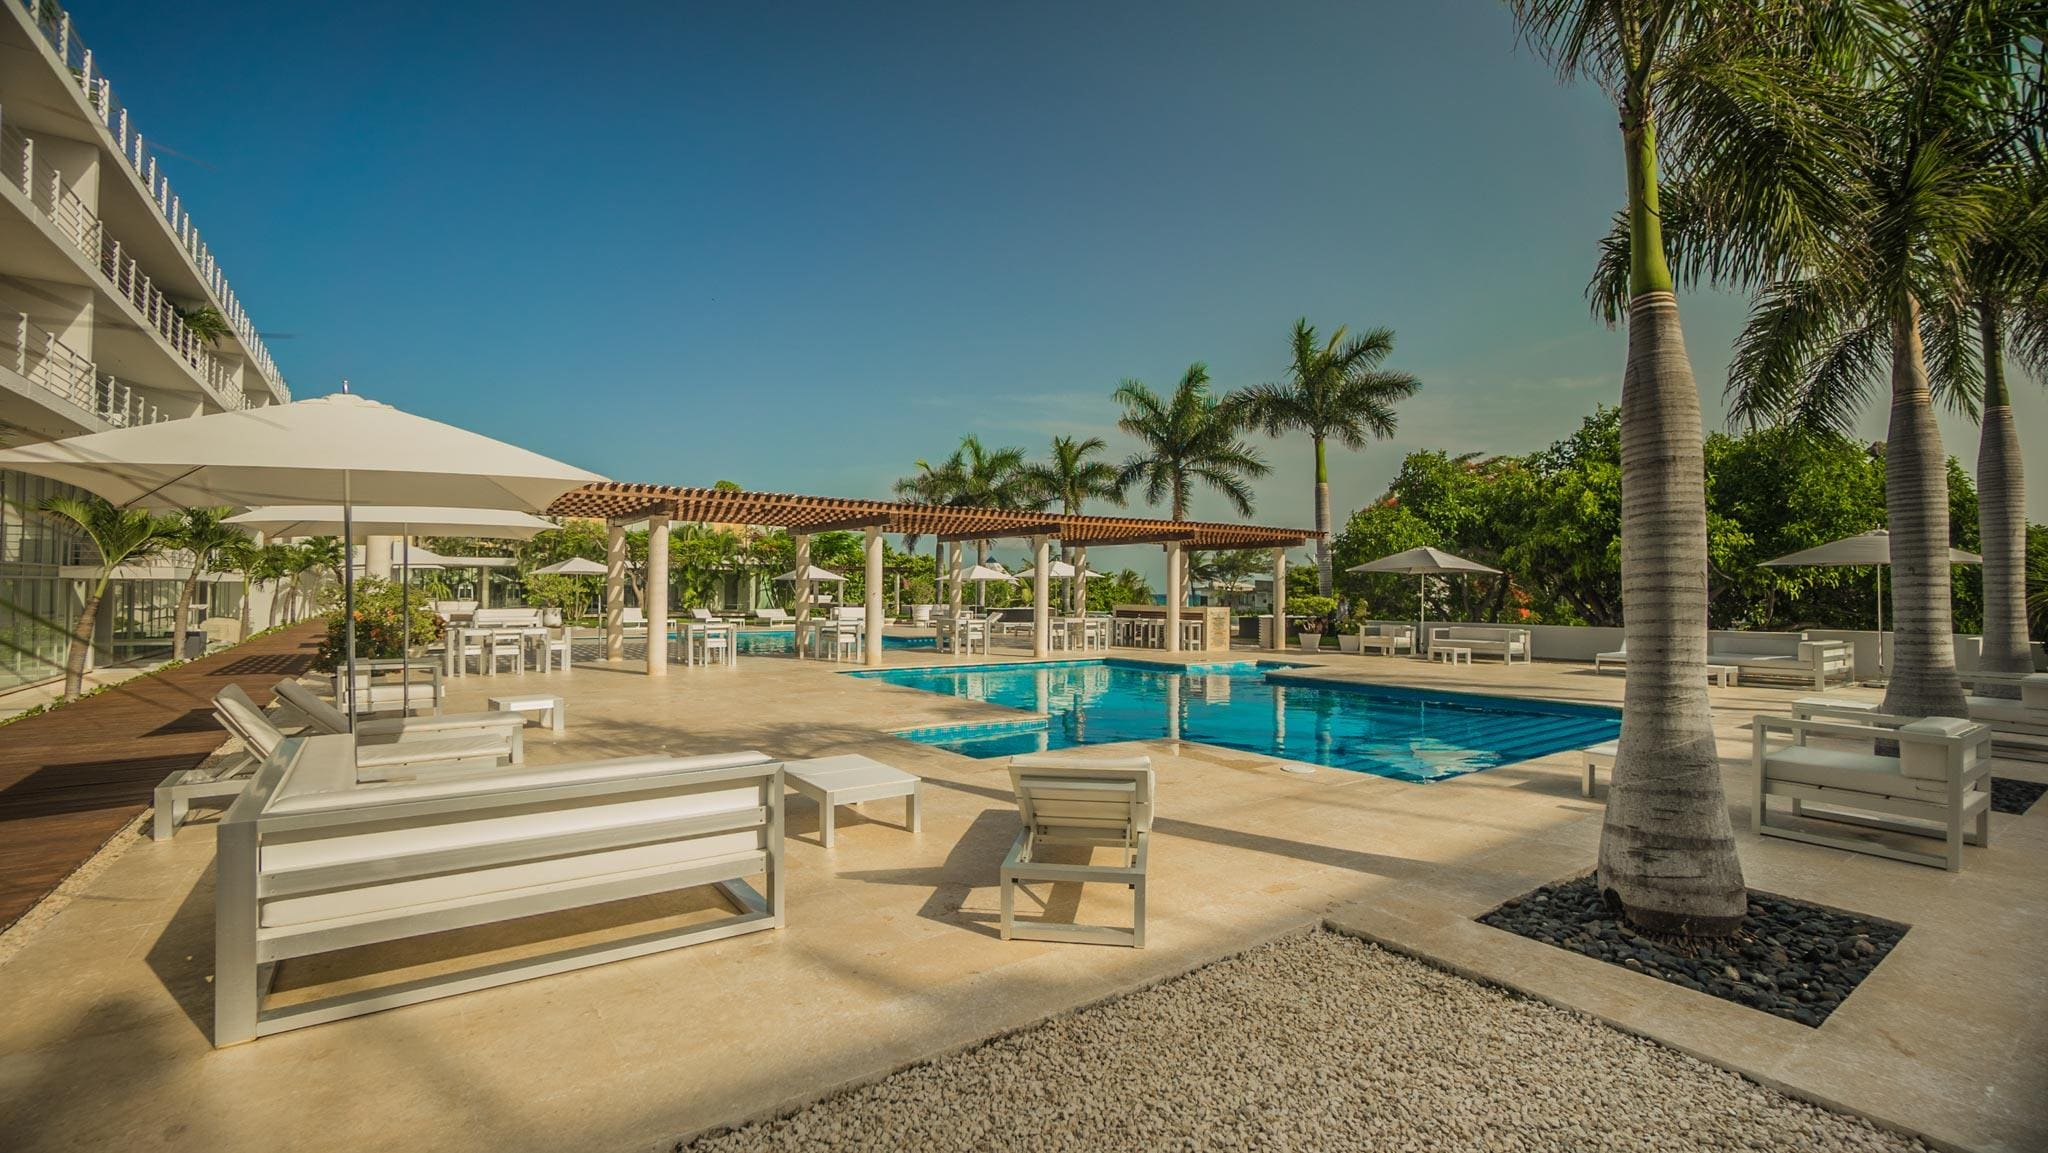 Magic 2 Bedroom Condo with Exceptional Pool and Lounge Area